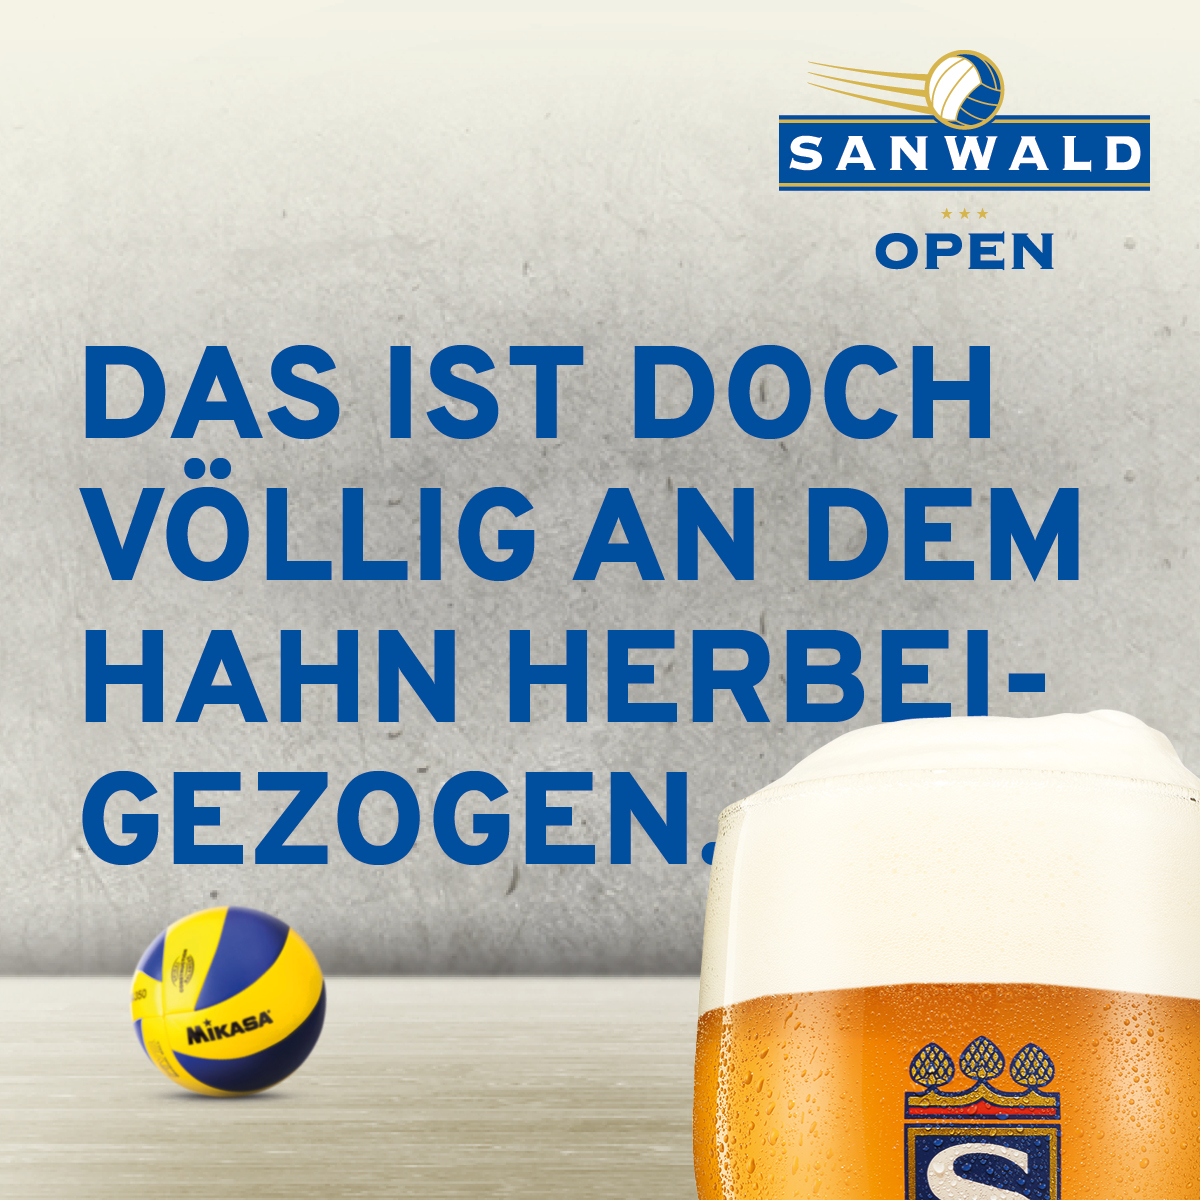 Sanwald Open - Instagram Post